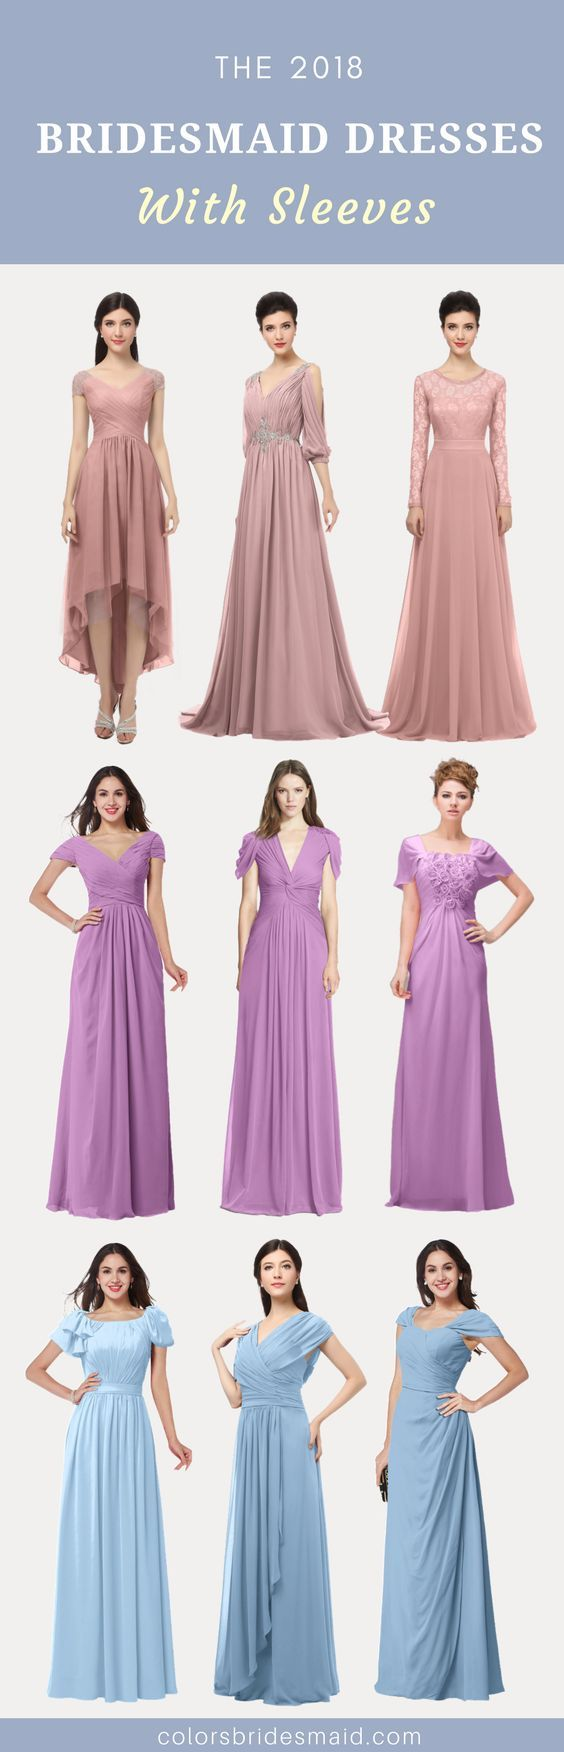 Bridesmaid dresses with sleeves in bridal party attire u more